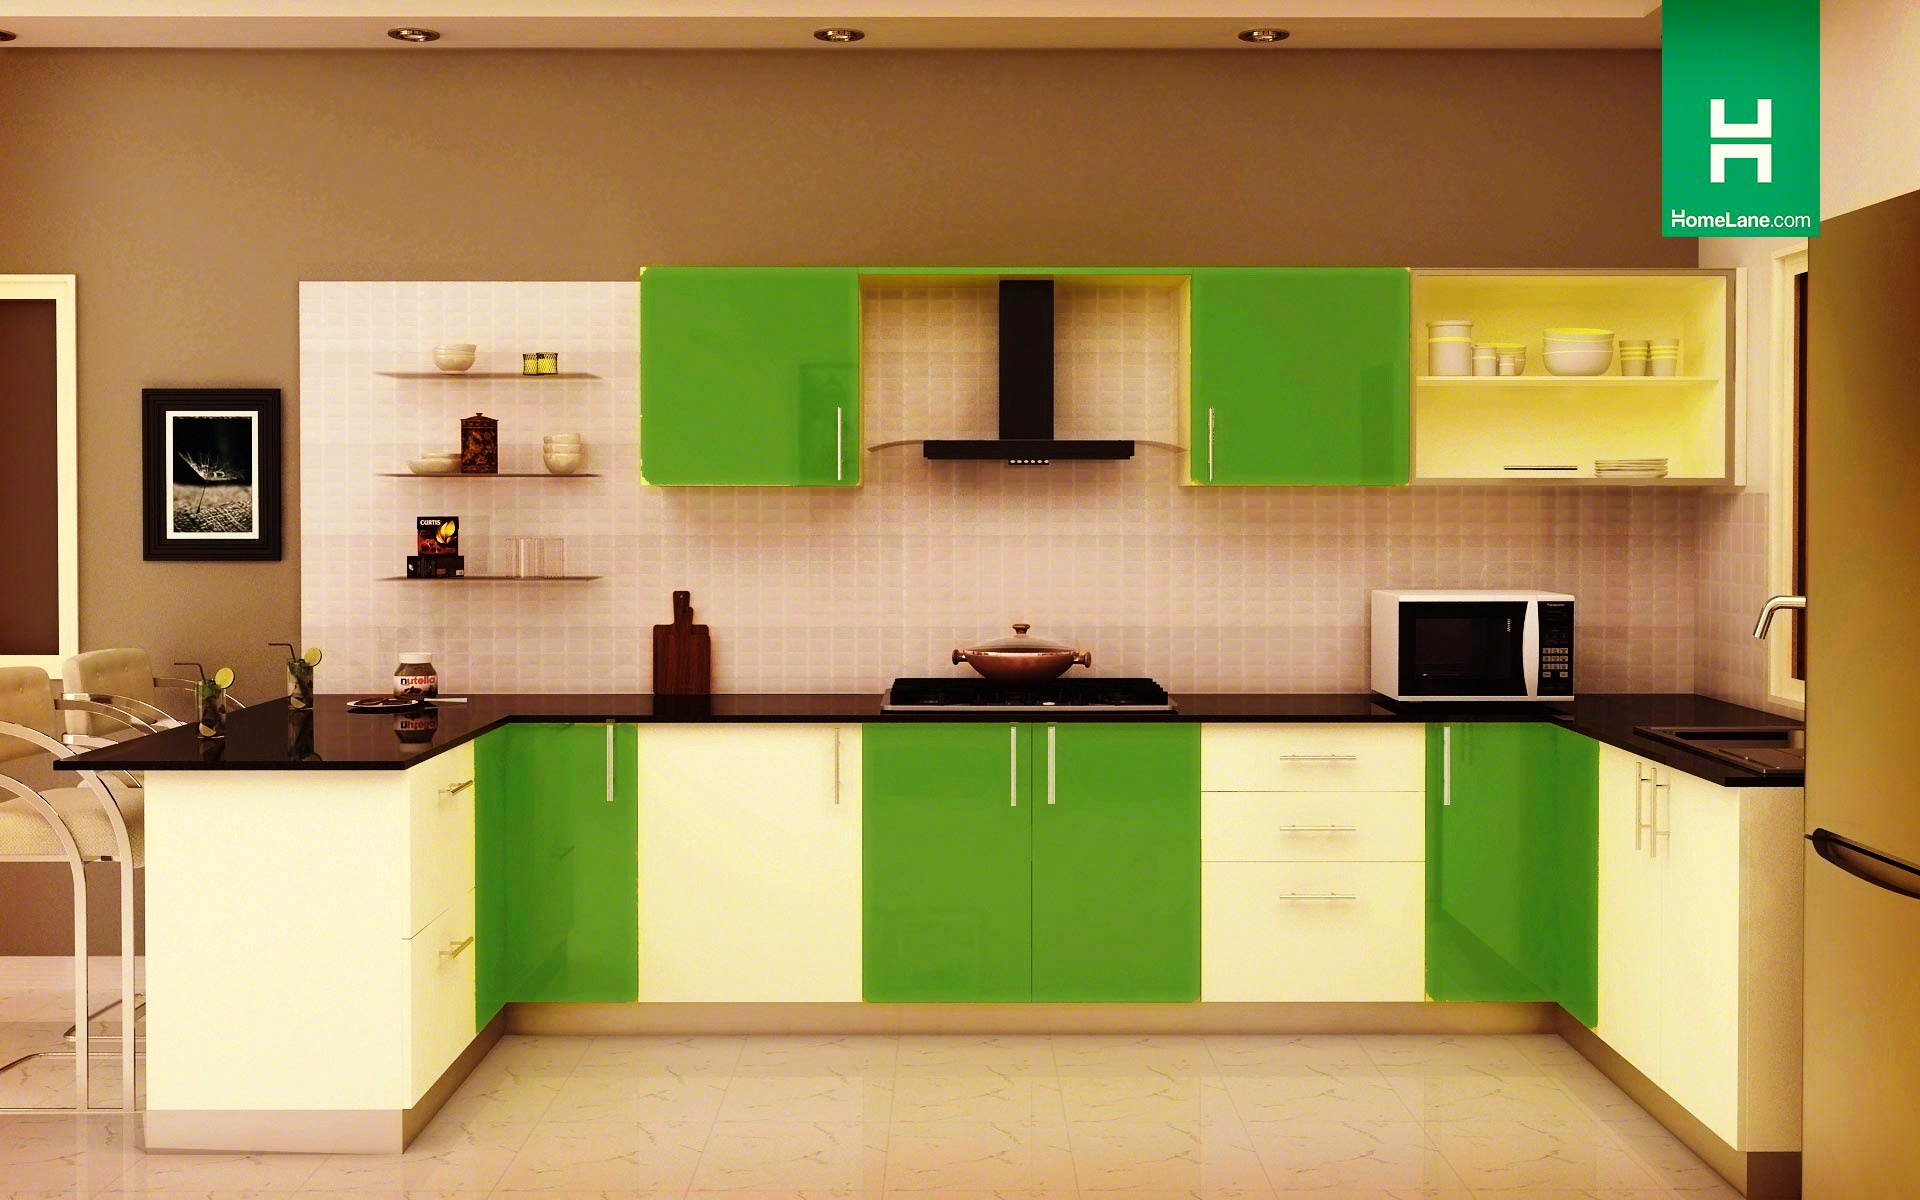 Modern Kitchen Modular latest modular kitchen designs india - kitchen design ideas